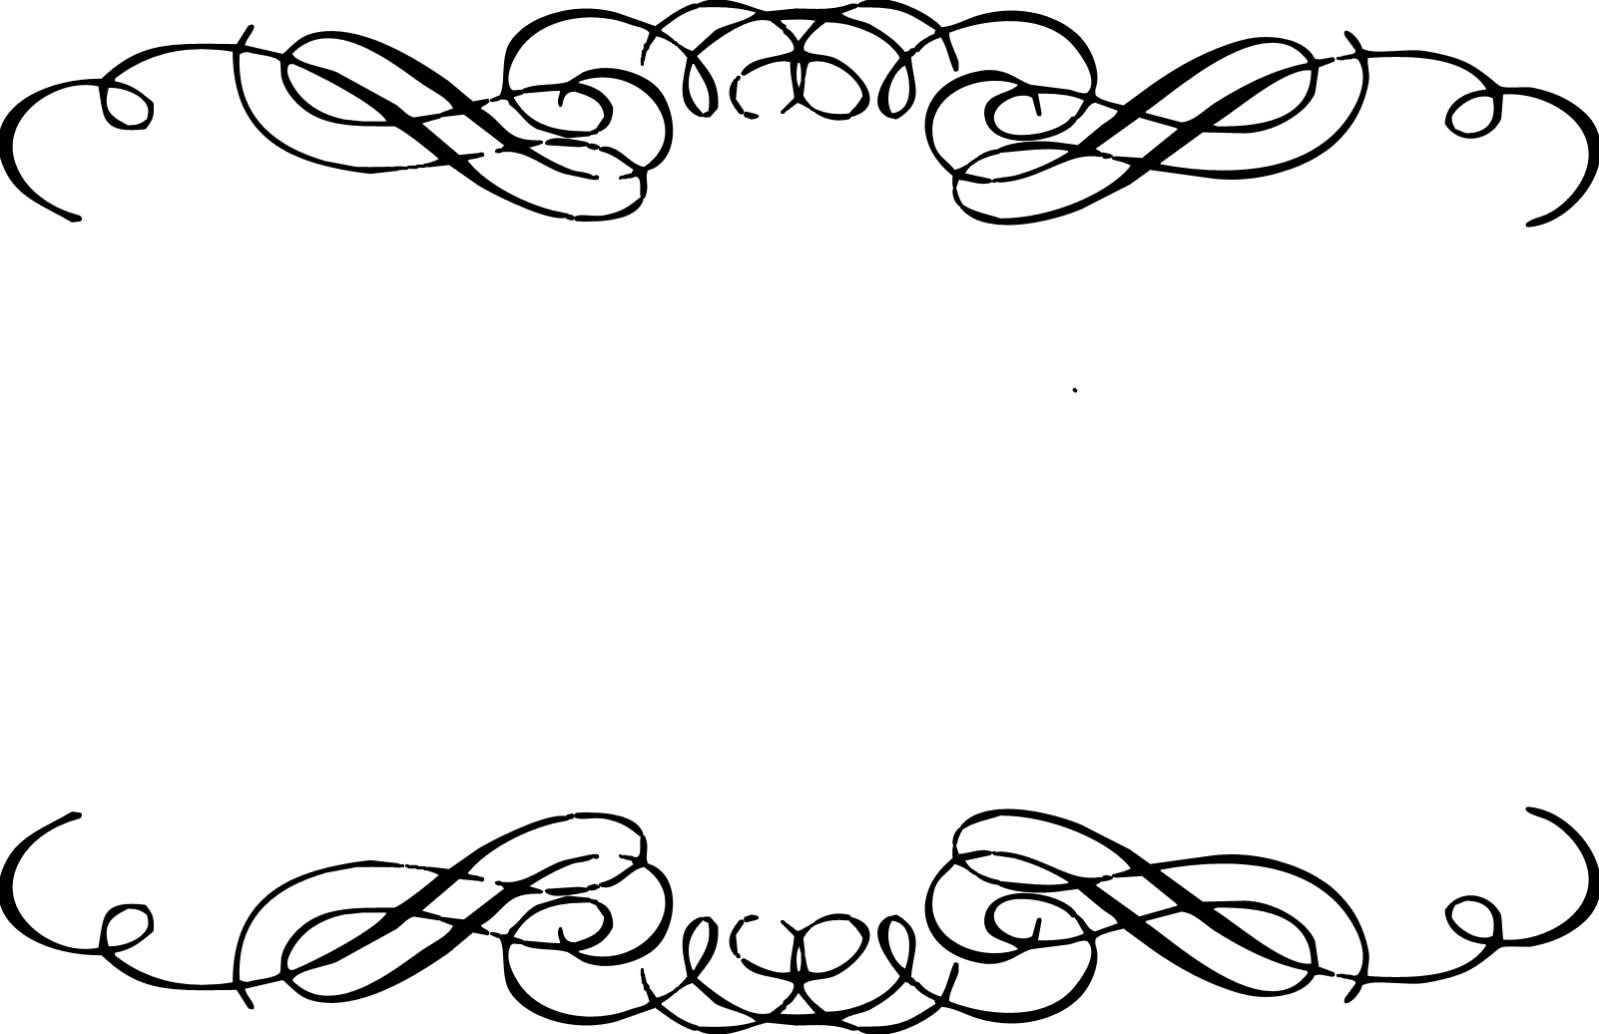 Fancy Borders For Word Documents Clipart